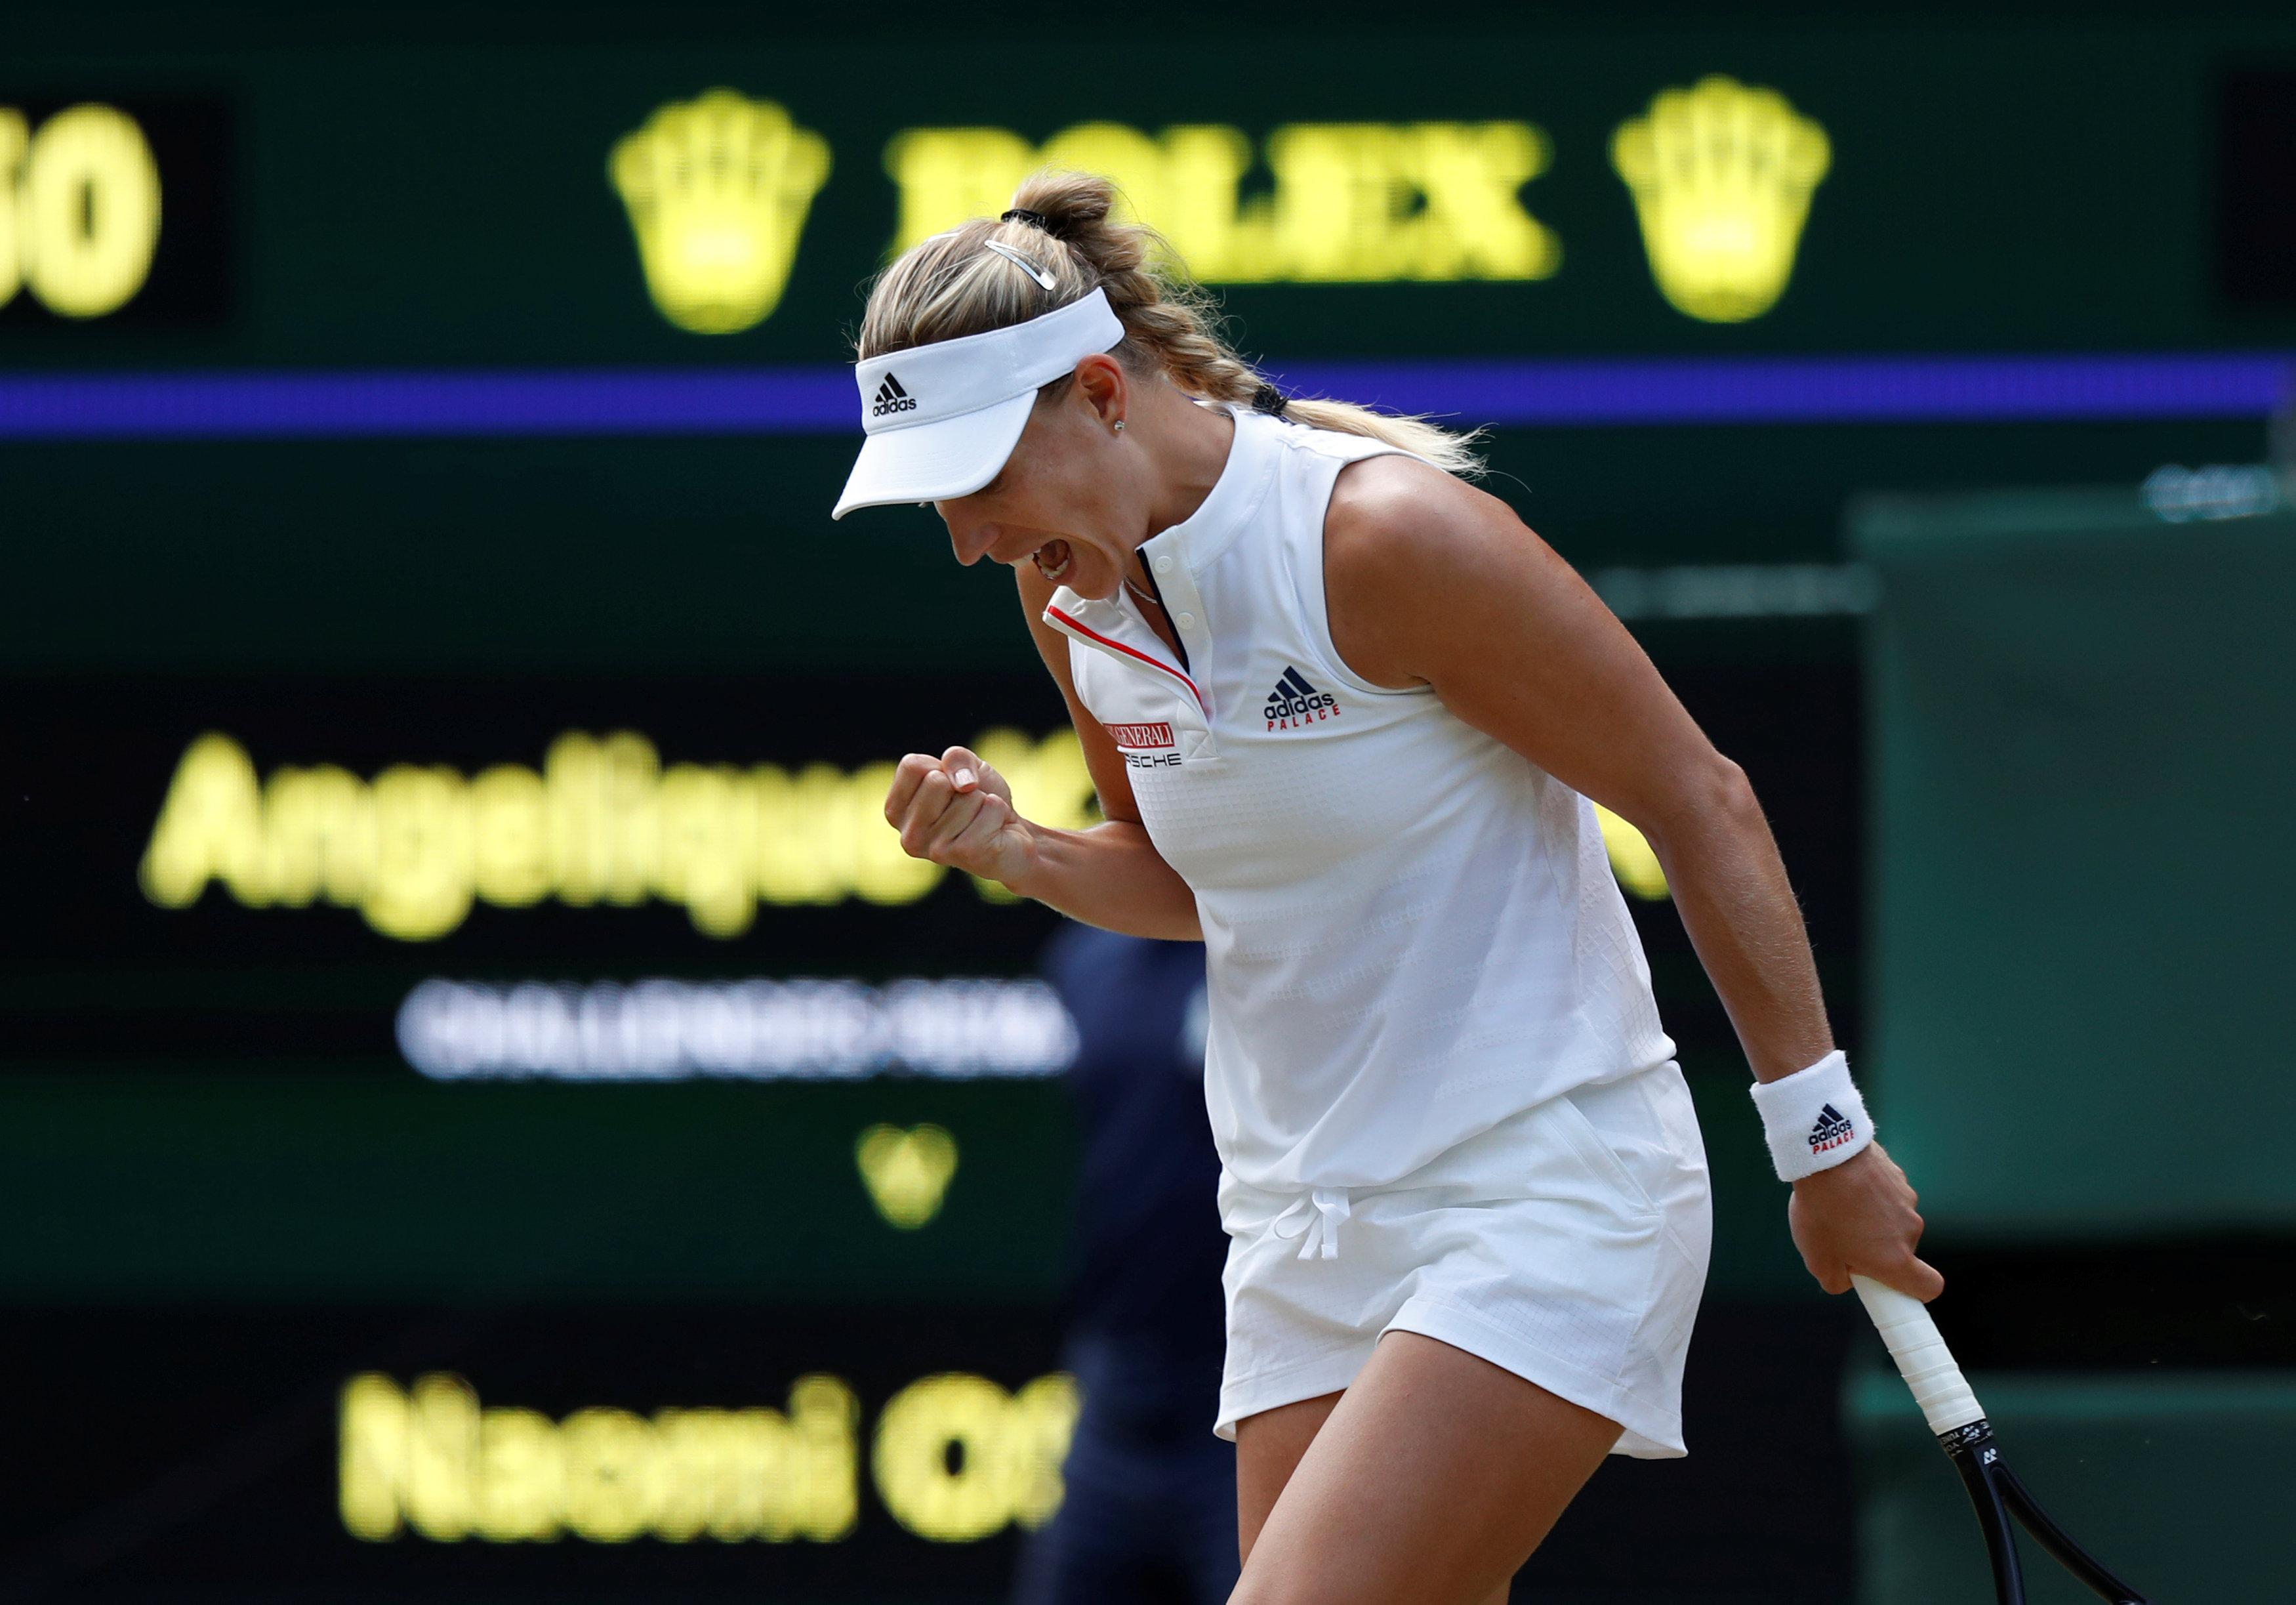 Angelique Kerber is one star aiming to go all the way at Wimbledon